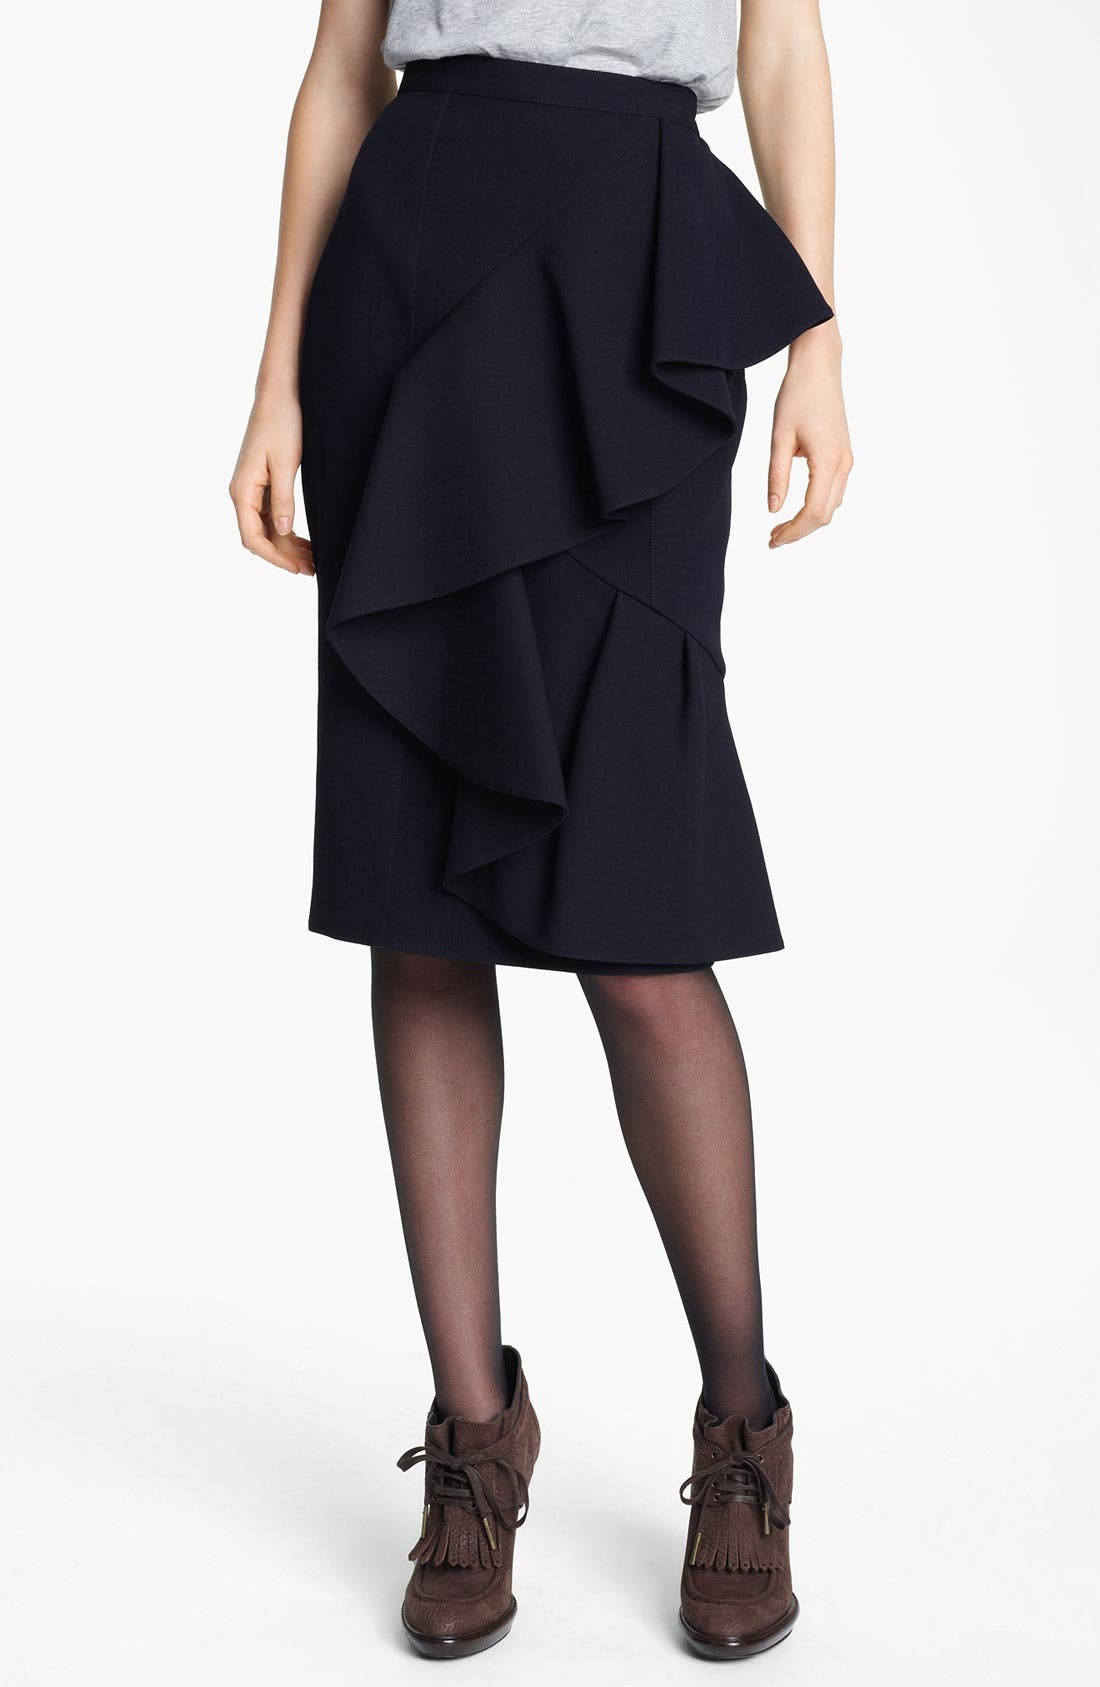 Alternate Image 1 Selected - Burberry Prorsum Ruffled Skirt